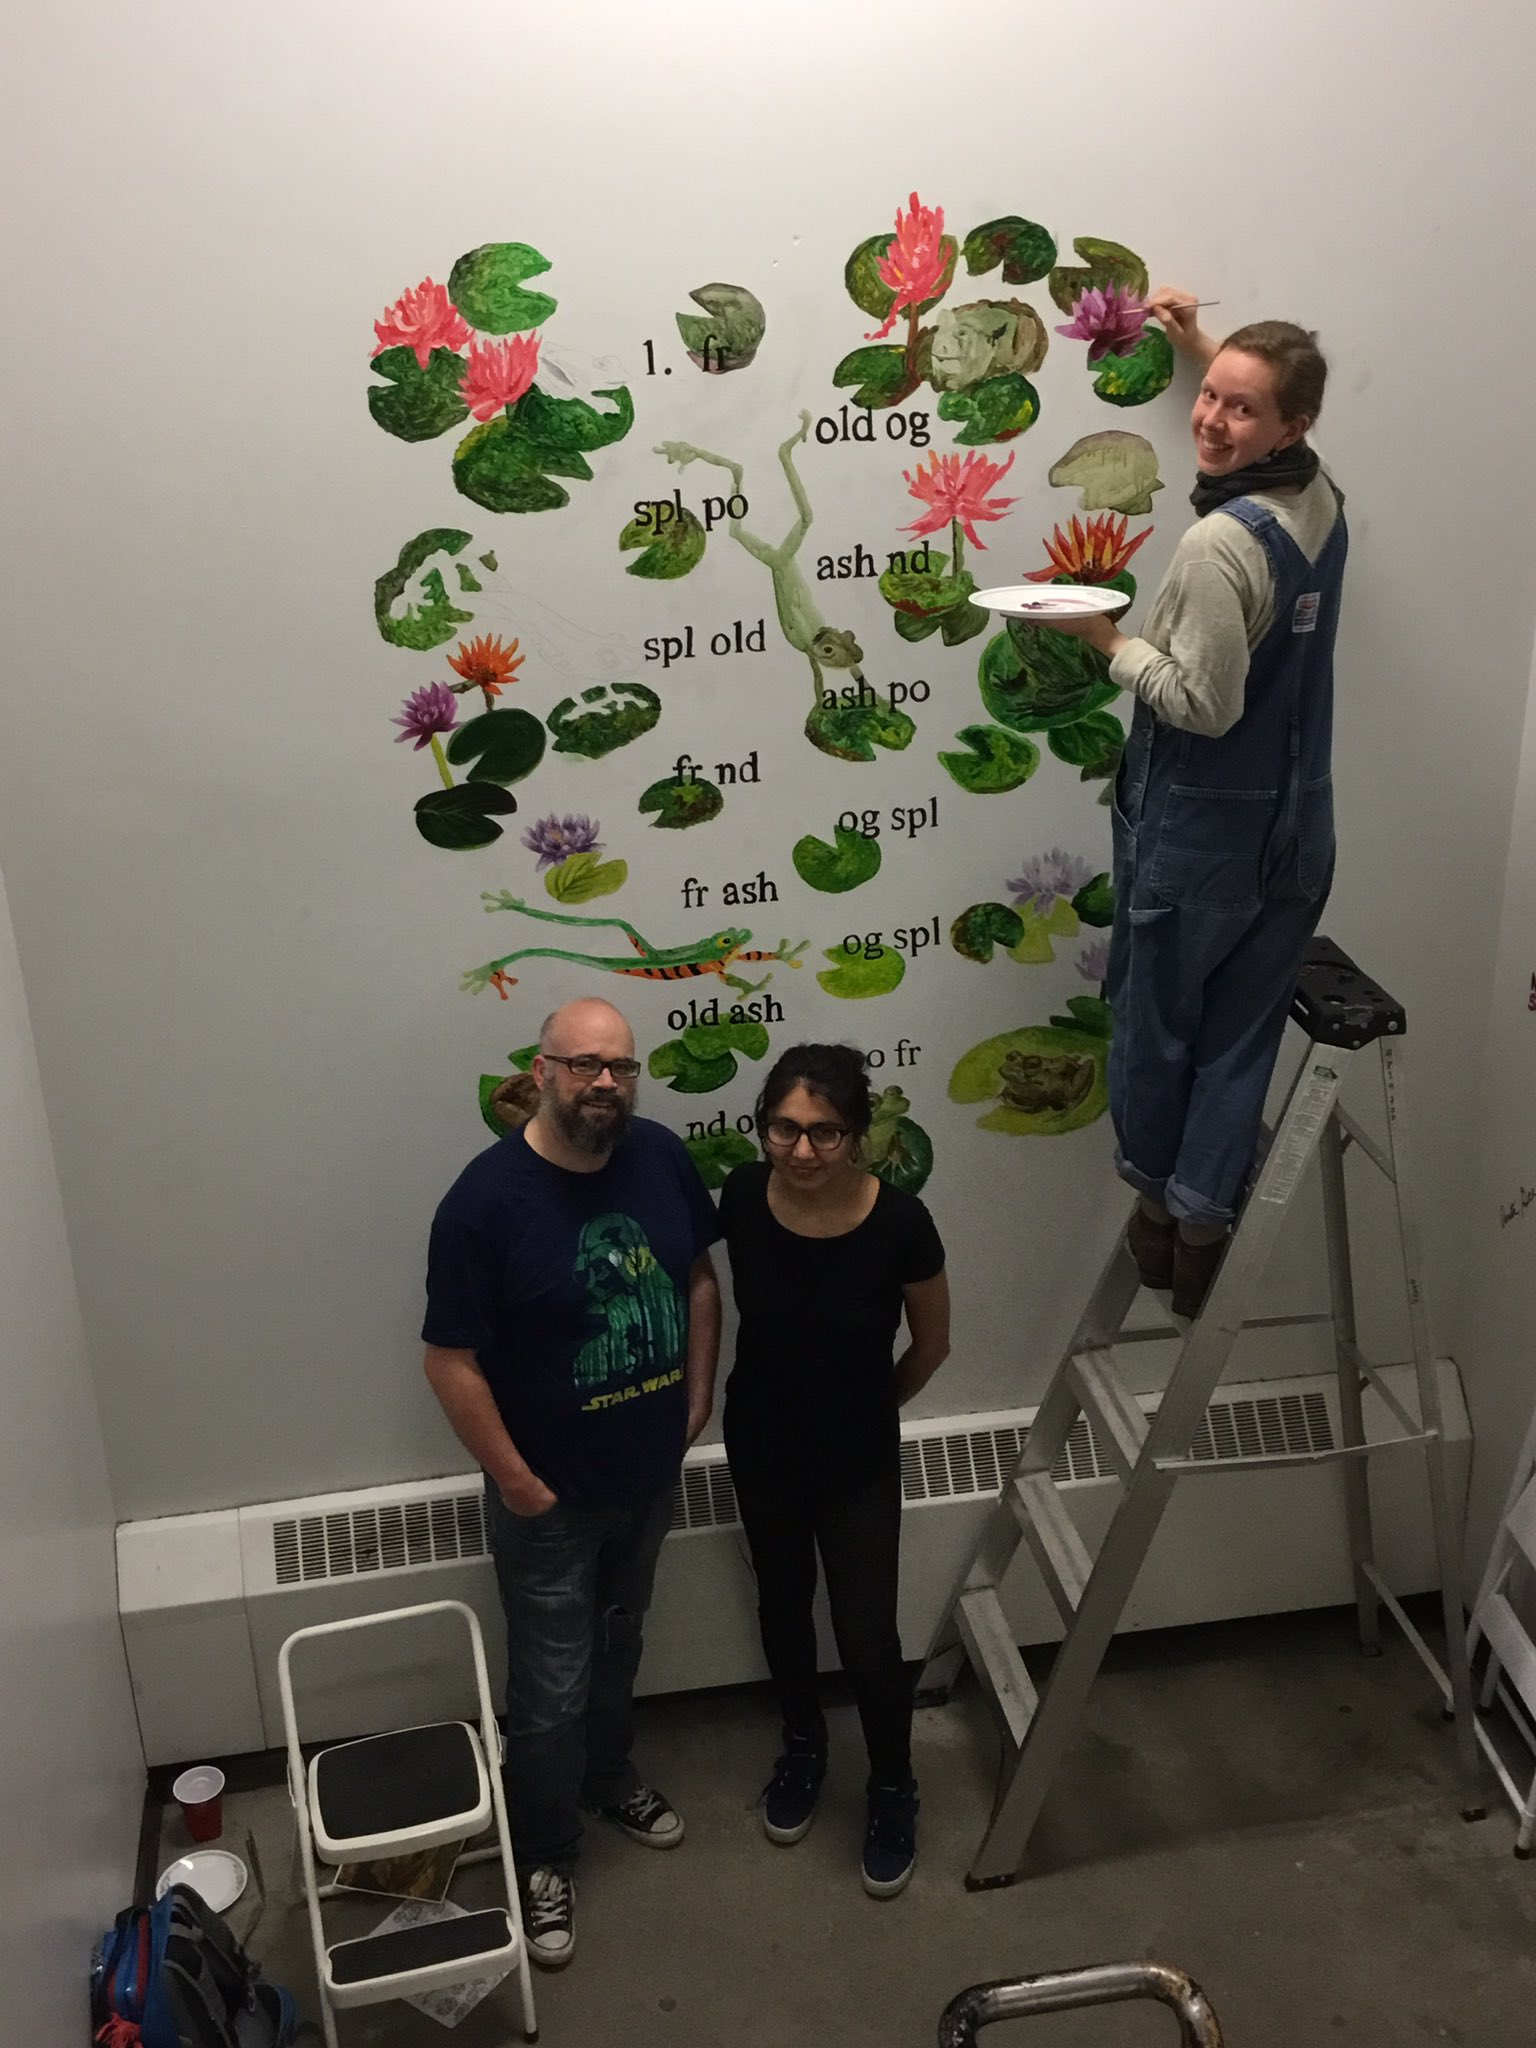 Mural accompanying restored Leon poem is just about done. Thnx to our wonderful volunteers for recovering @UCalgary_Arts history. #leonlives https://t.co/t8v3spkWos